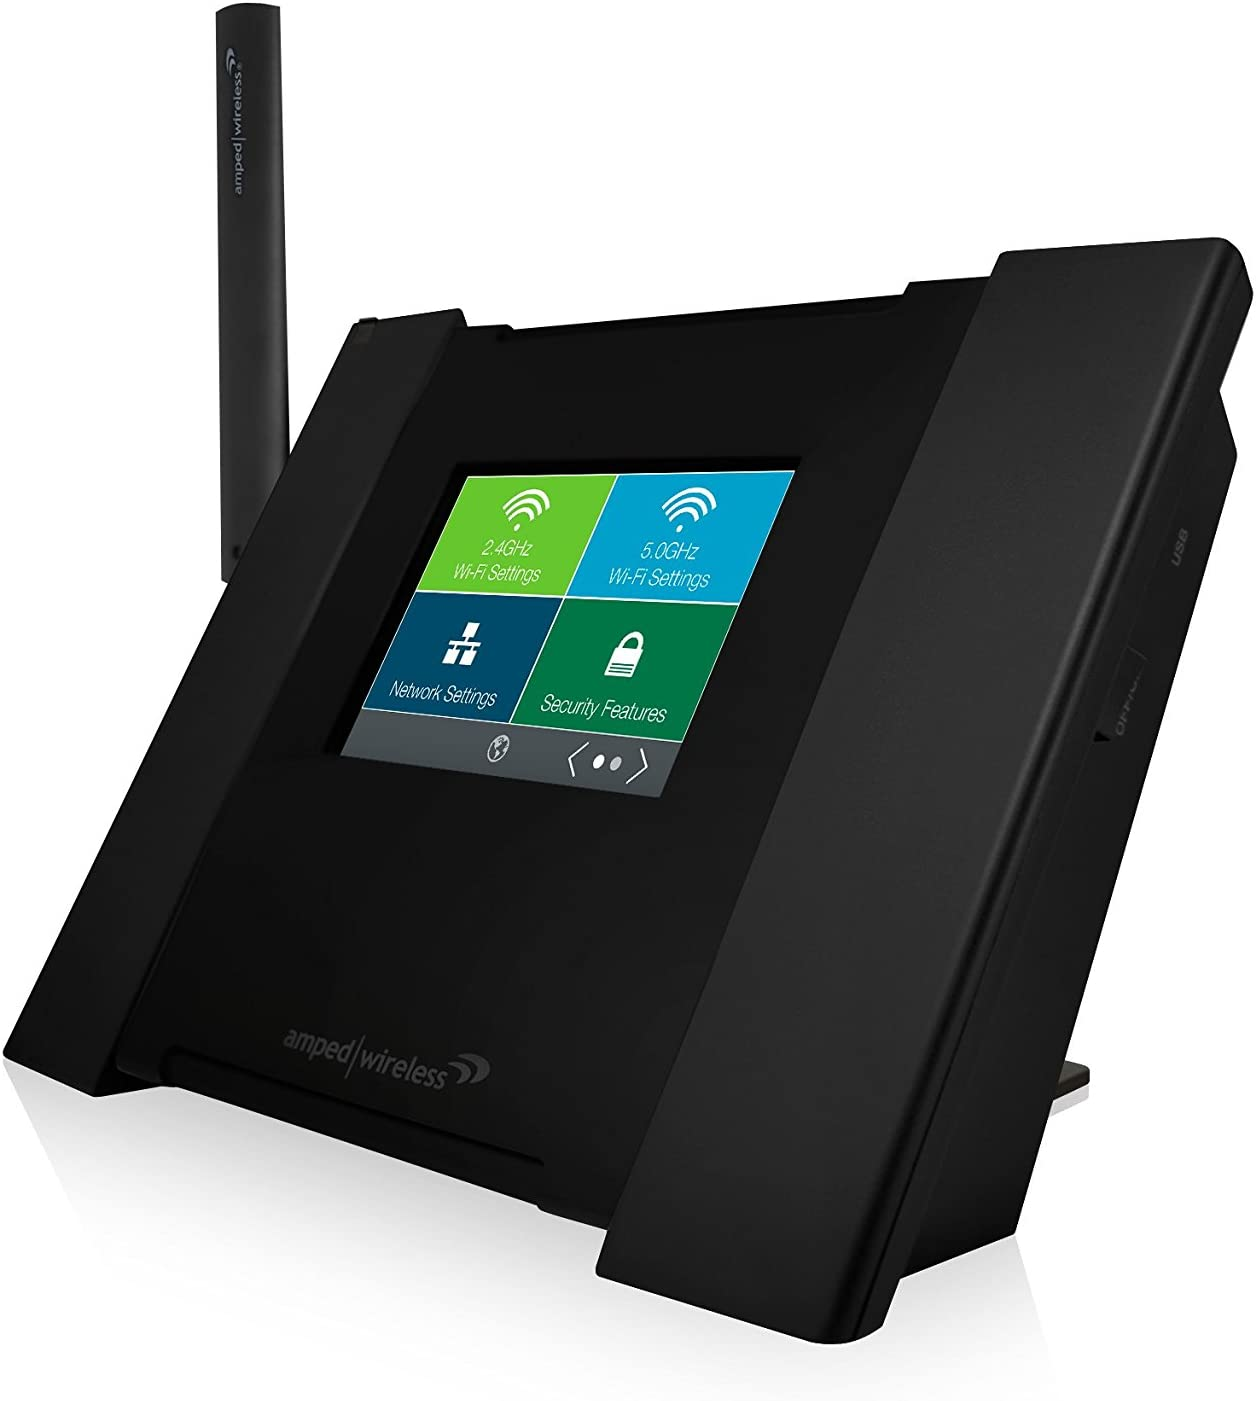 Amped TAP-R3 Wireless High Power Touch Screen AC1750 Wi-Fi Router